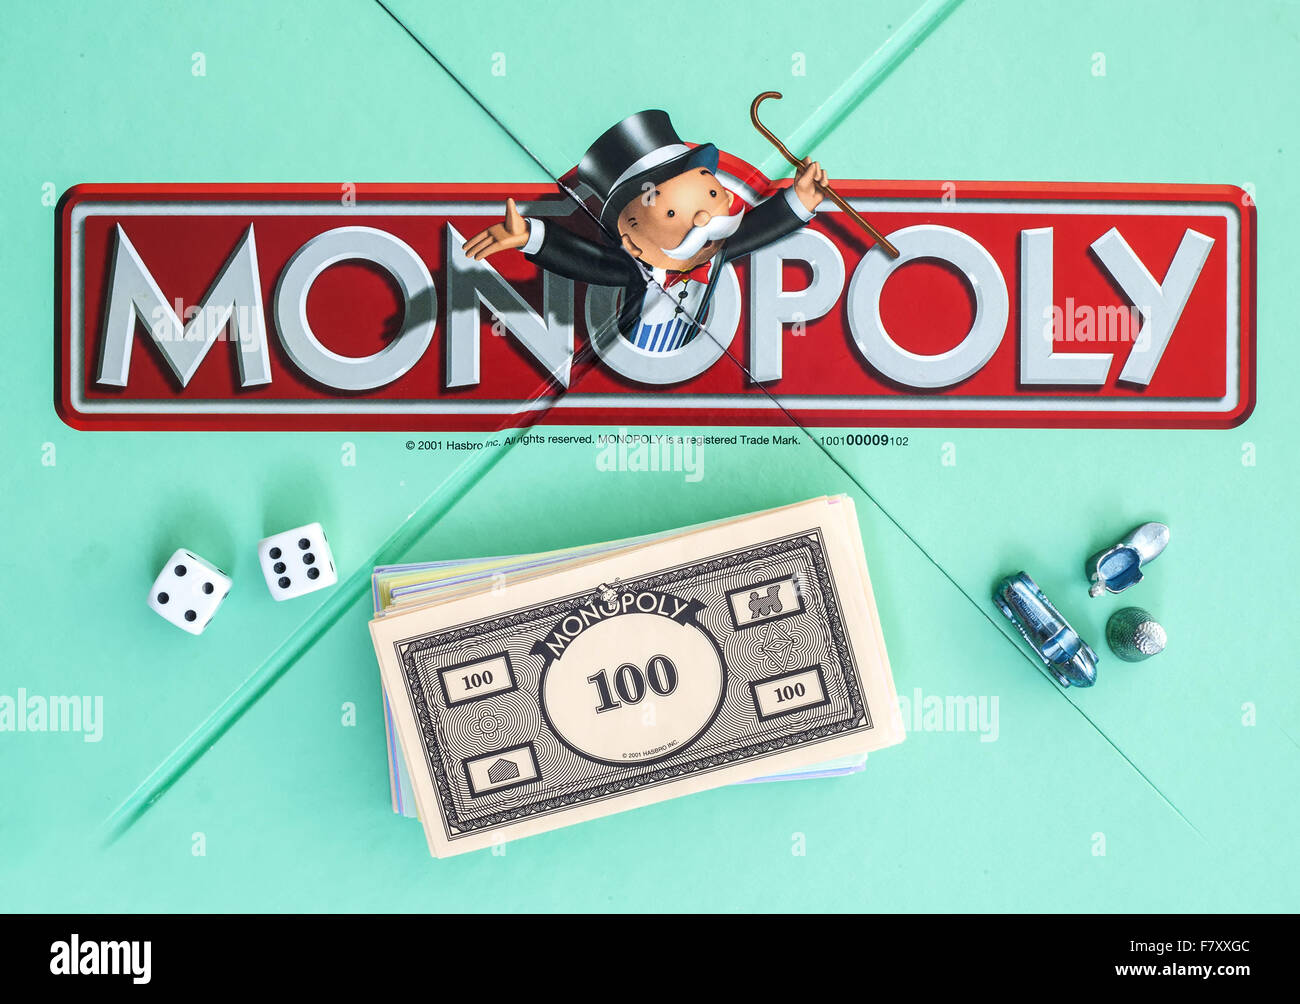 English Edition of Monopoly showing The Logo,  The classic trading game from Hasbro was first introduced to America - Stock Image